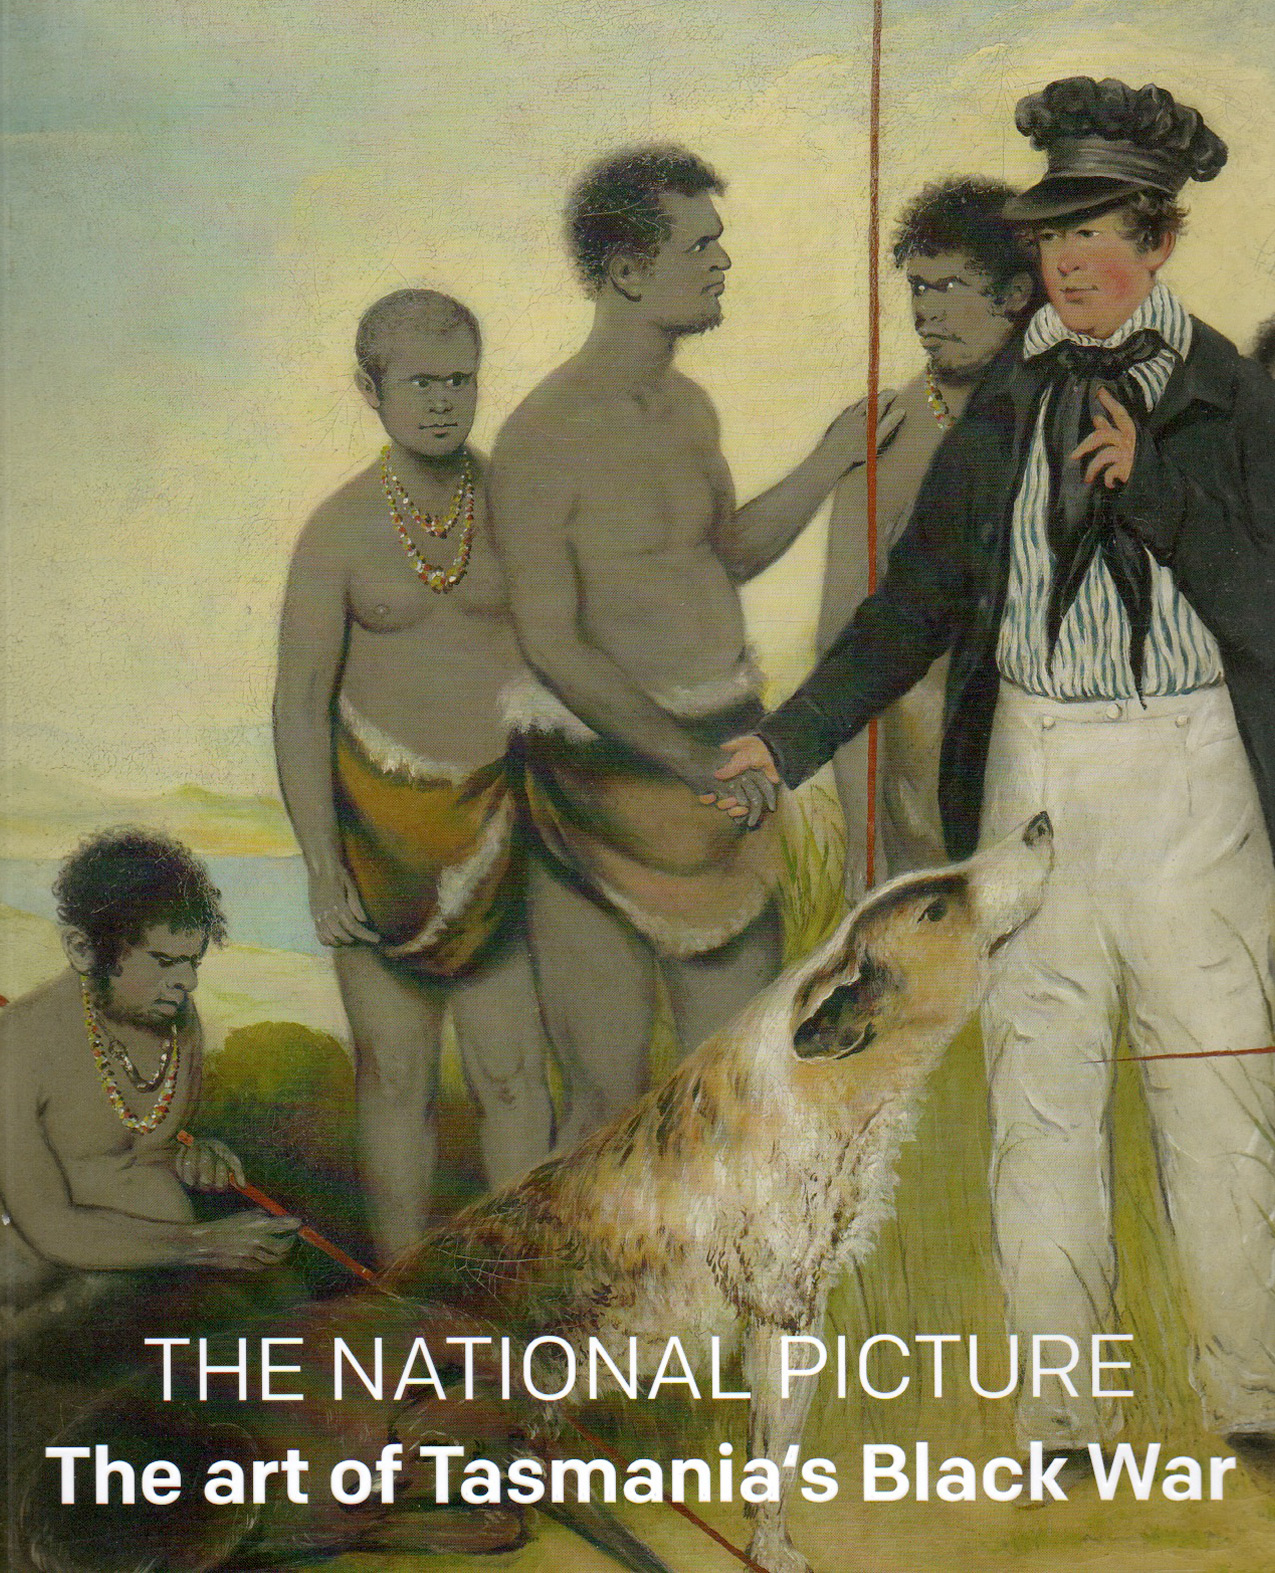 National Picture, The